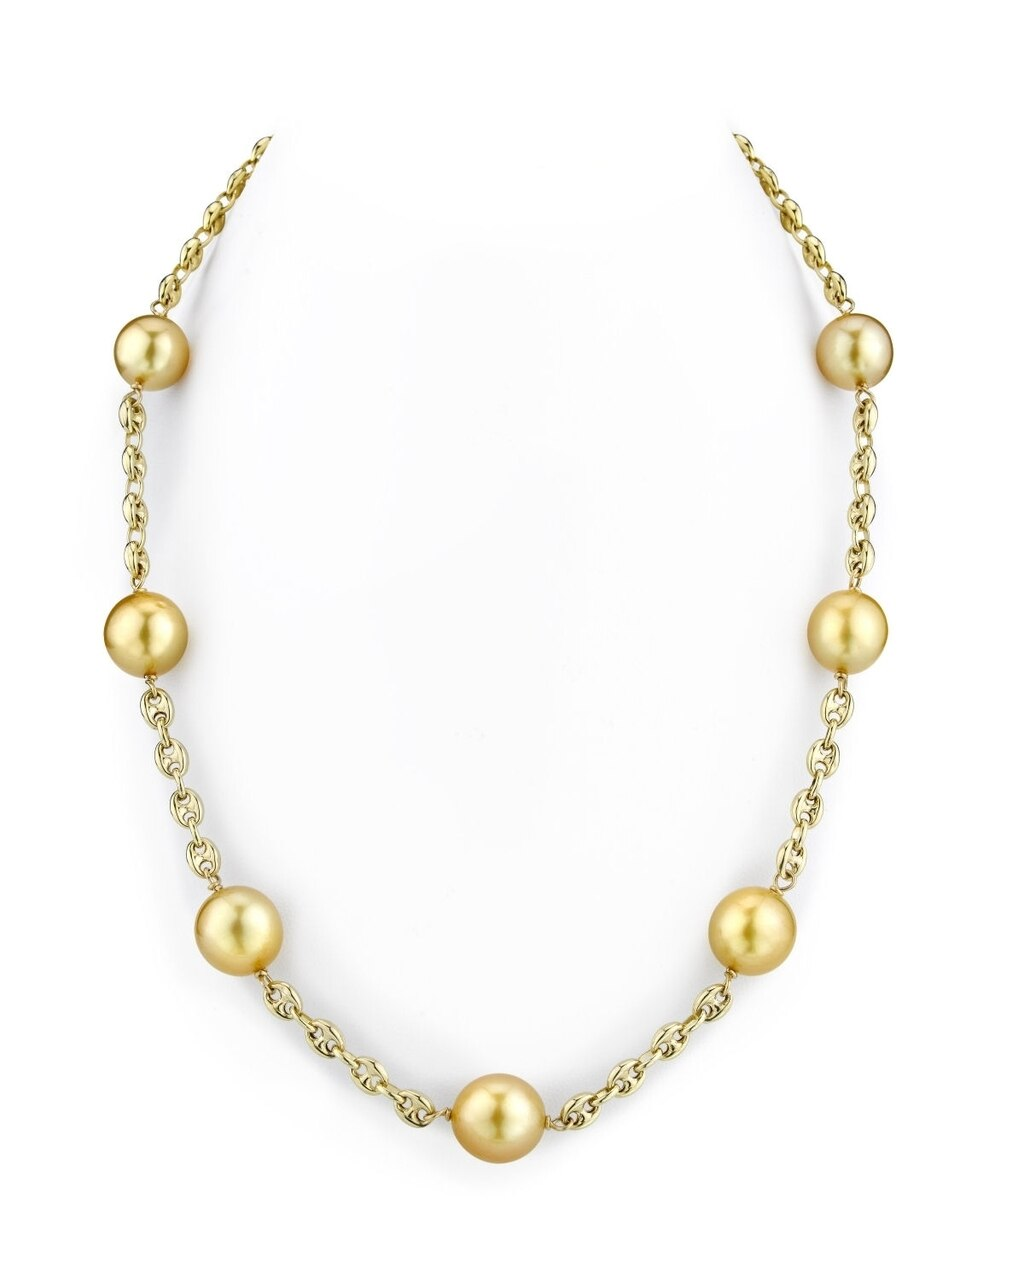 This exquisite necklace features 10.0-11.0mm Golden South Sea pearls, handpicked for their radiant luster